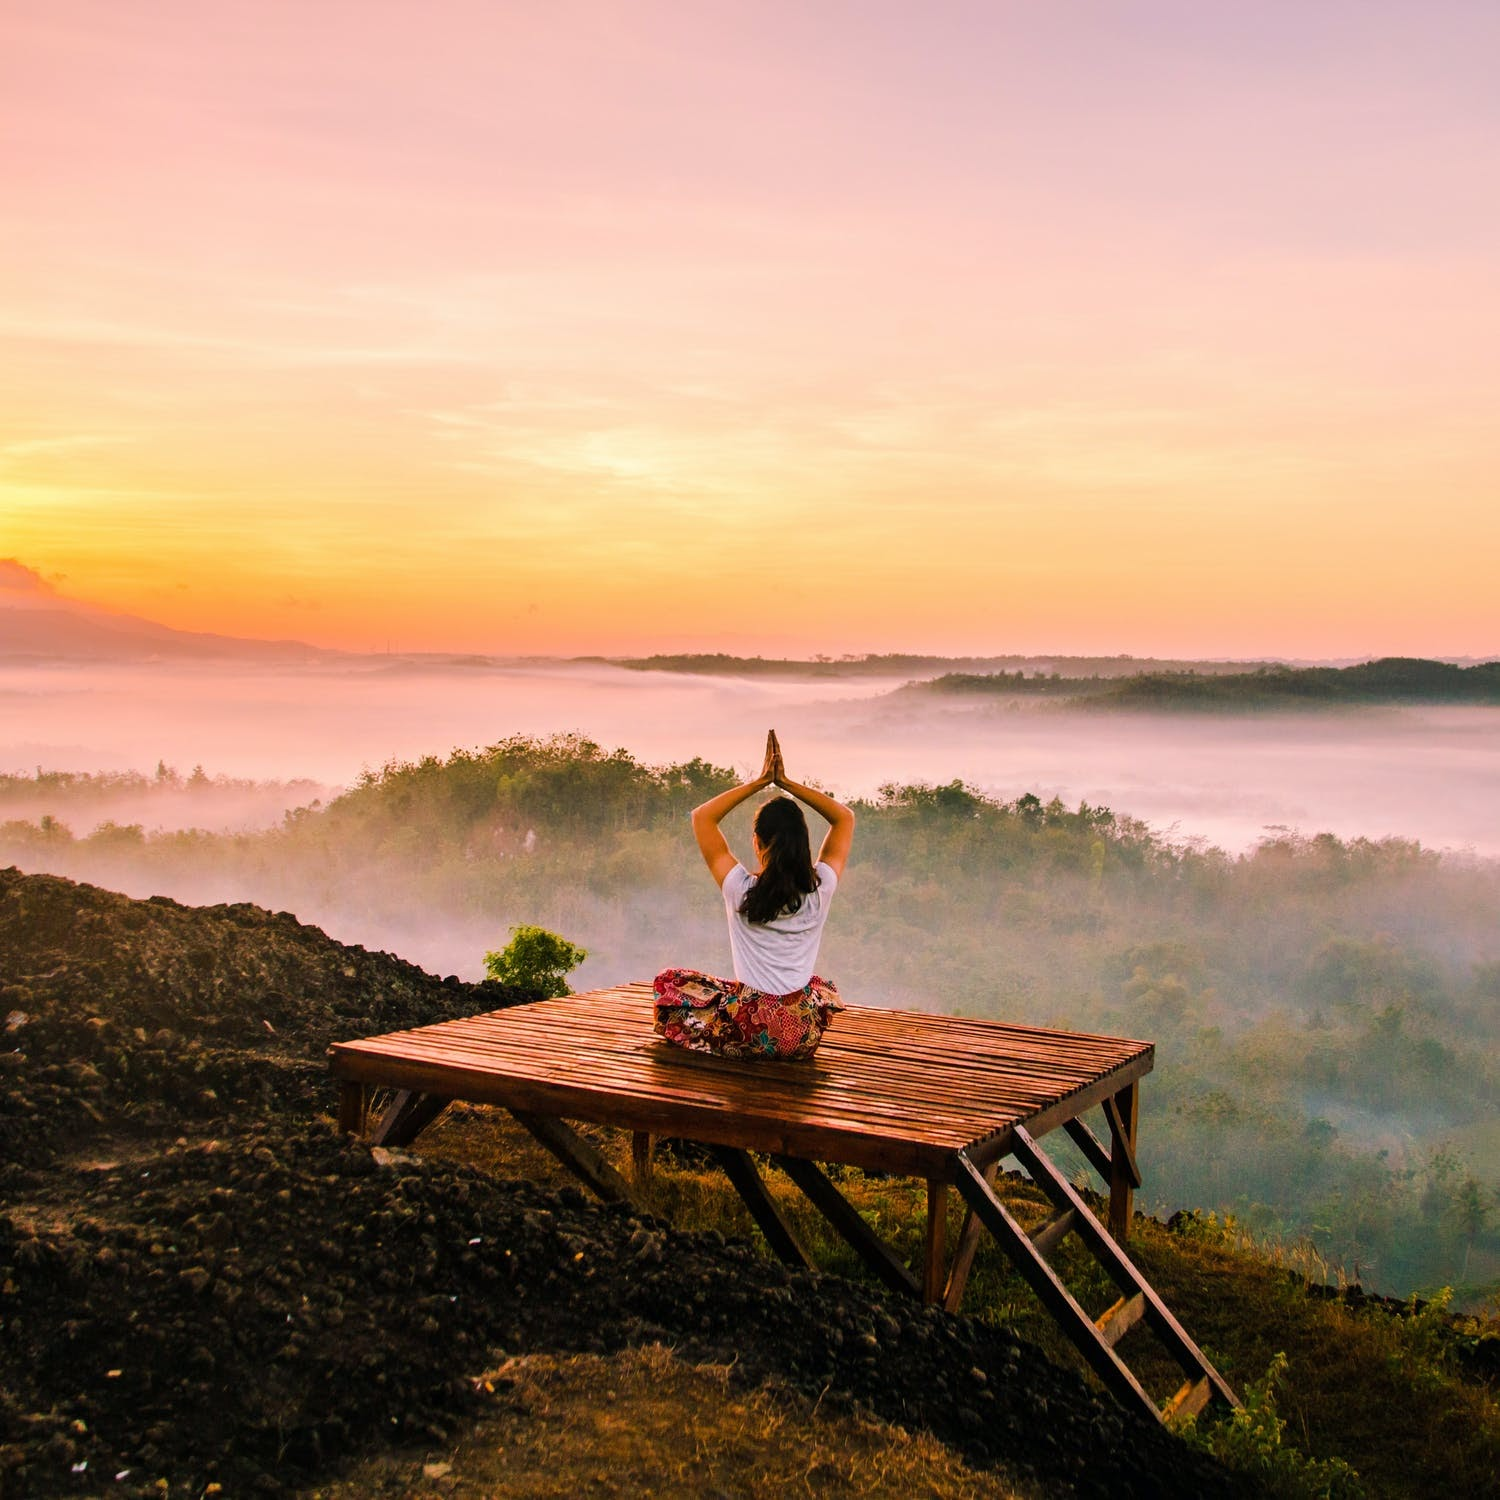 A woman practices yoga on a deck in front of a foggy landscape.